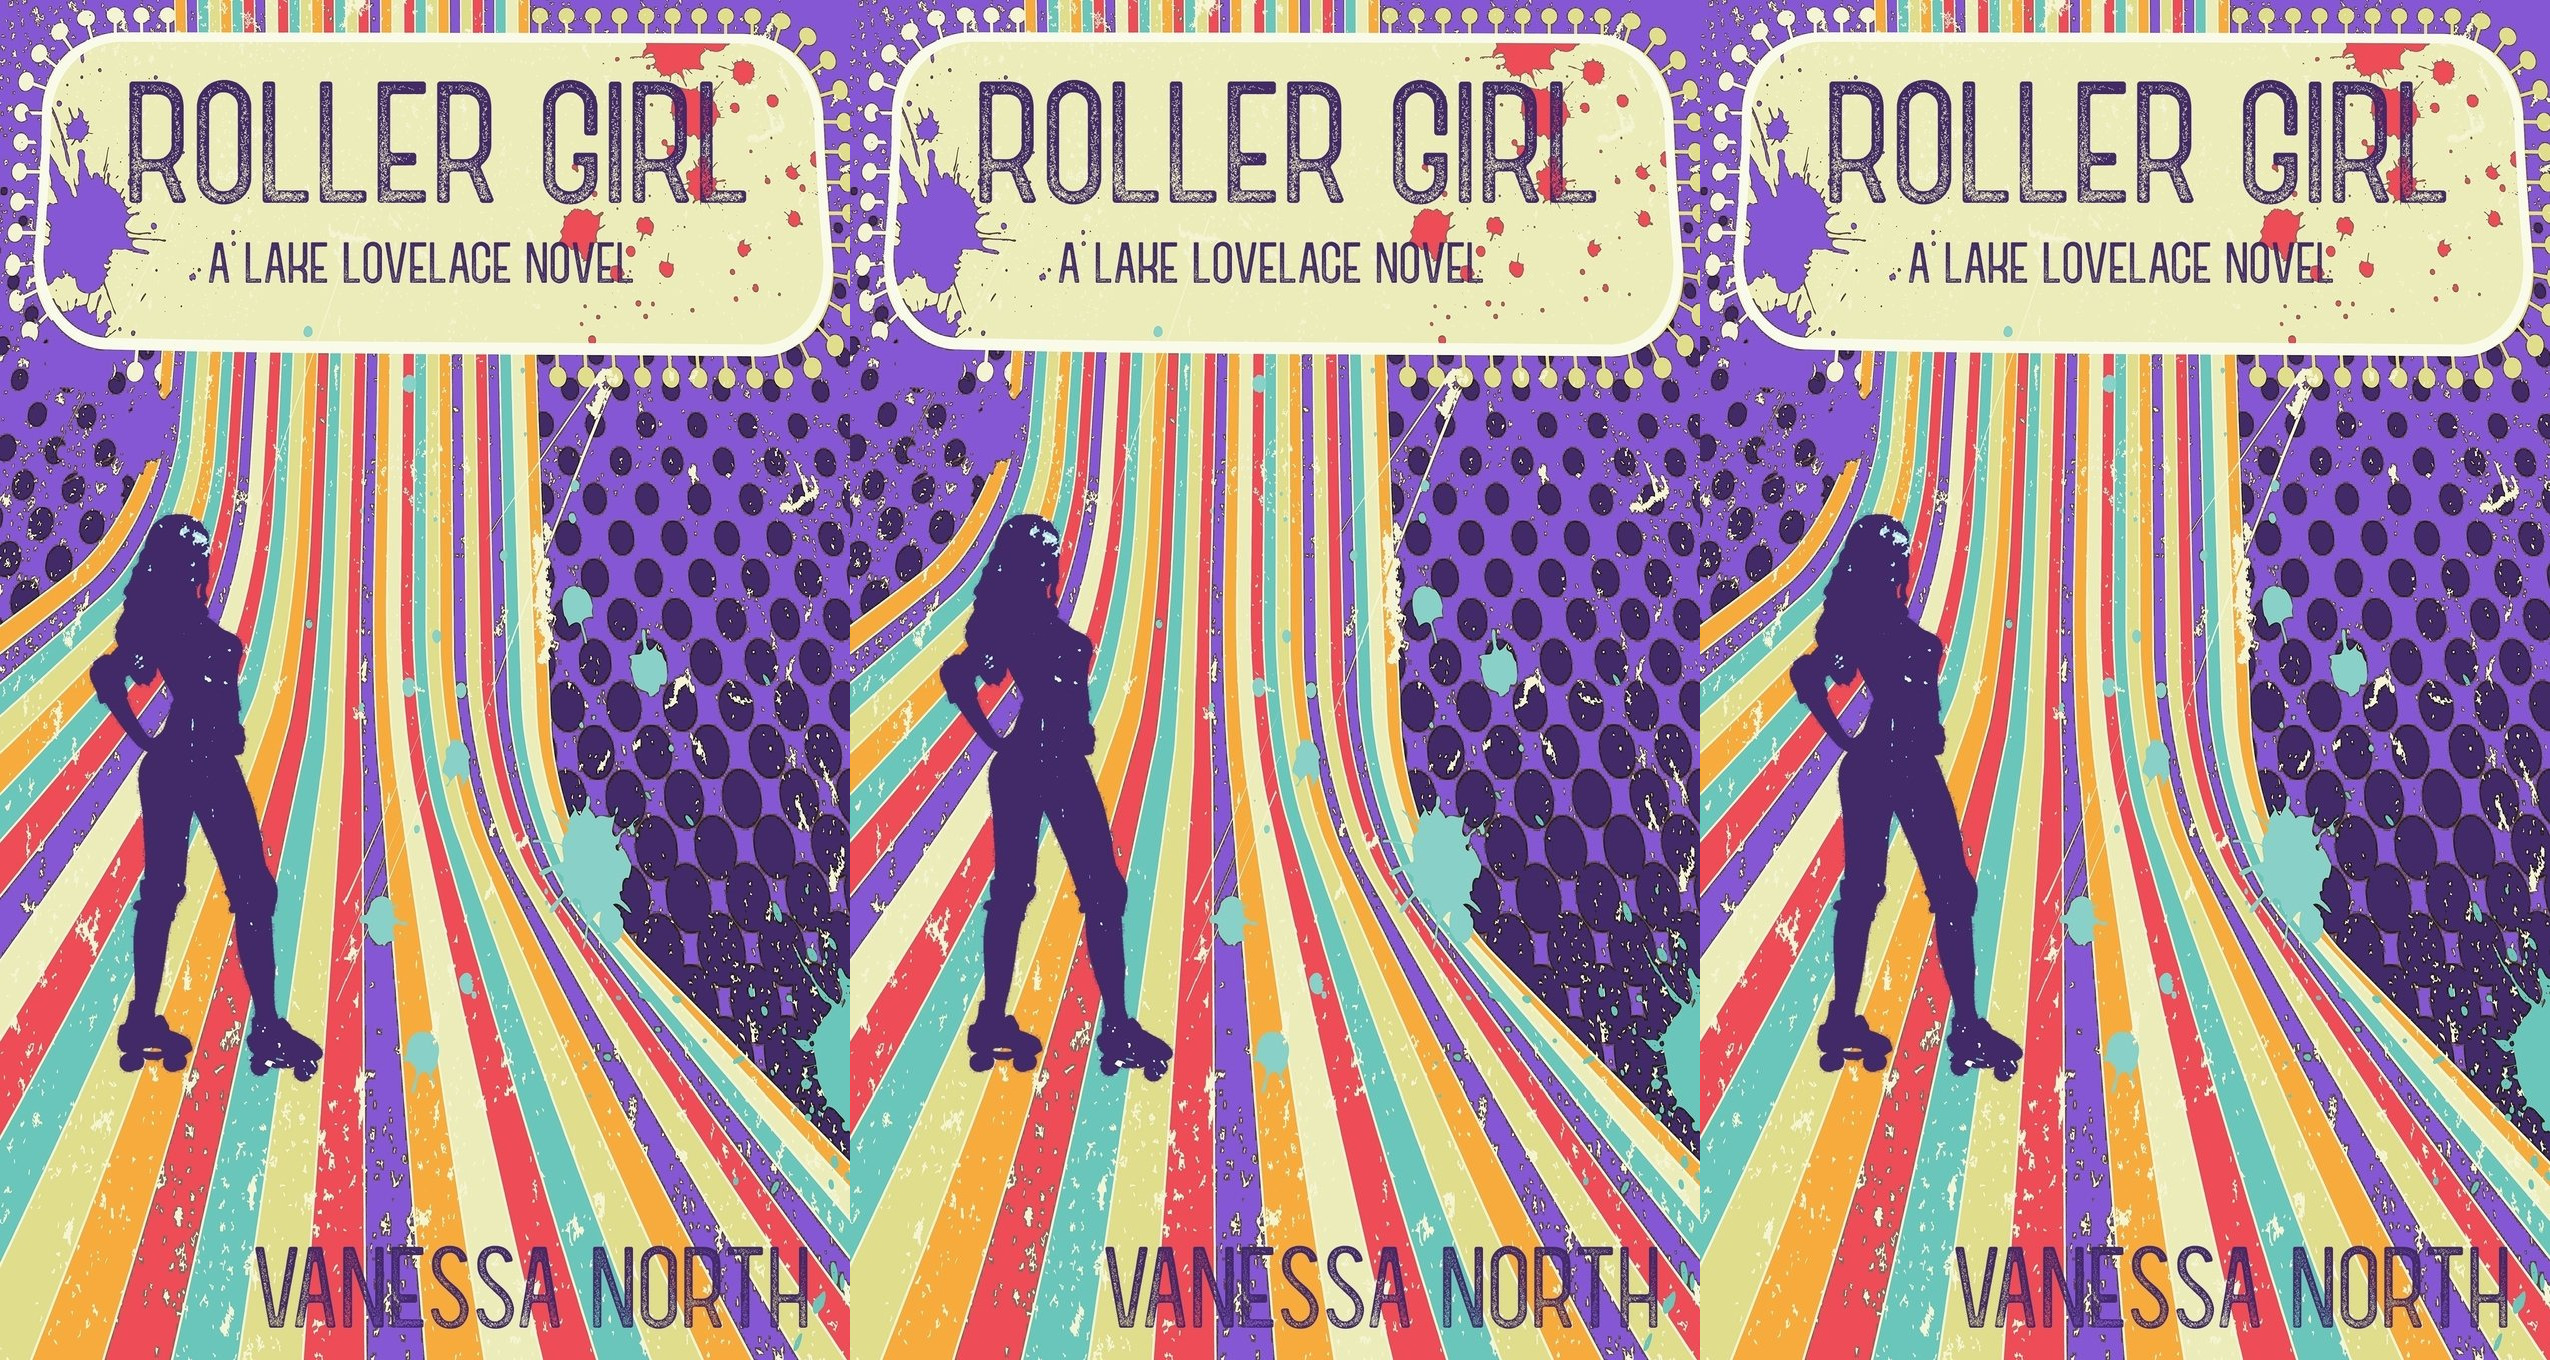 trans romance novels, roller girl by vanessa north, books